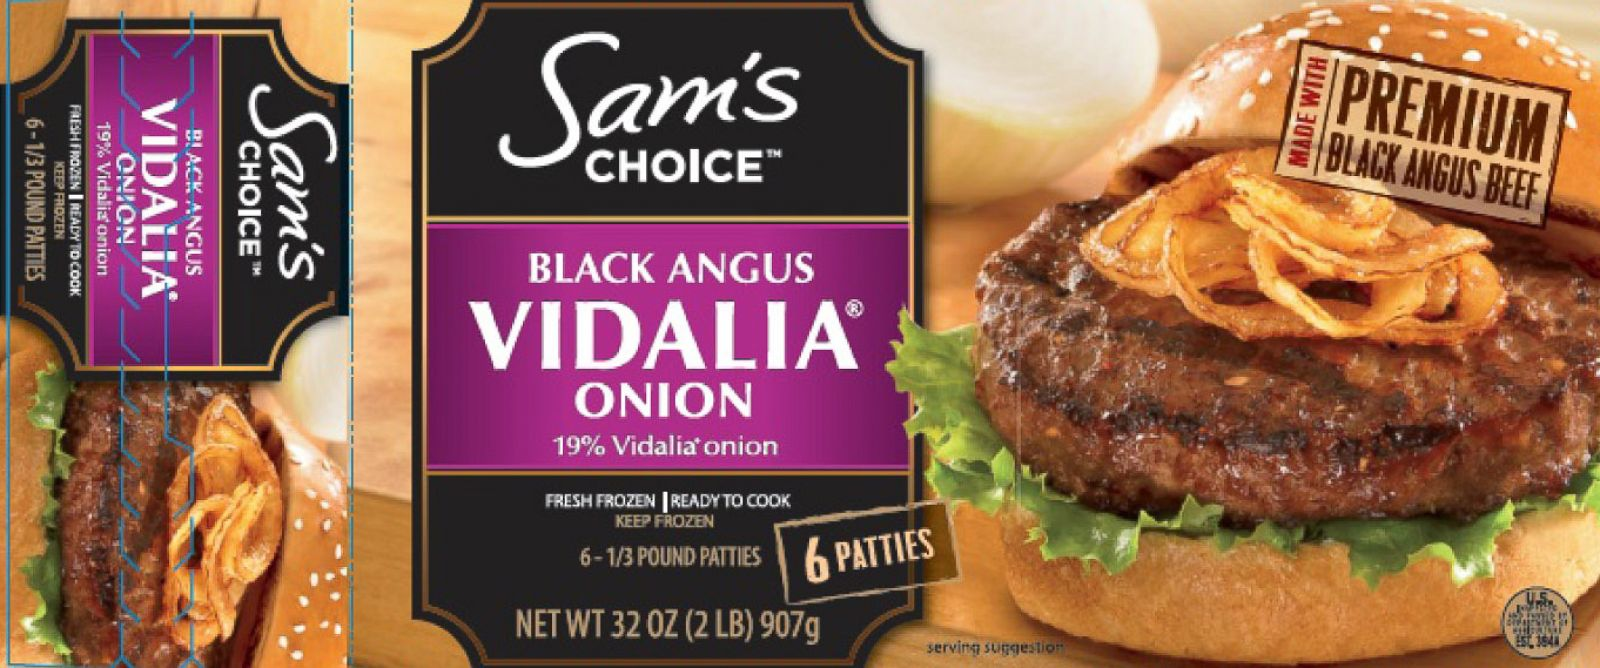 """PHOTO: The USDAs Food Safety and Inspection Service (FSIS) announced the recall of beef products from the Huisken Meat Company. The products have the name """"Sams Choice Black Angus Beef Patties with 19% Vidalia Onion,"""" pictured in the image above."""